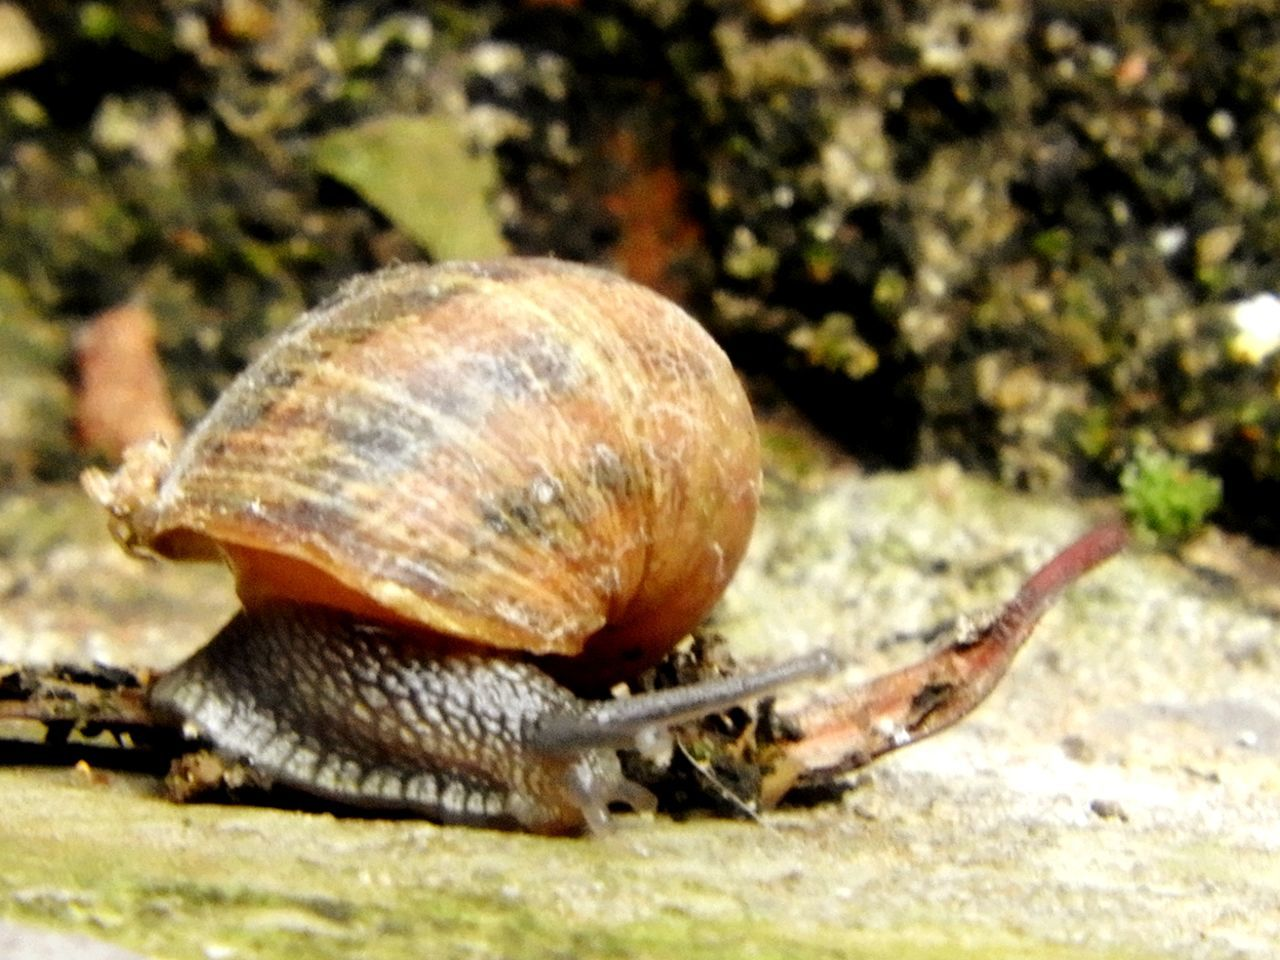 snail, one animal, animal themes, animal shell, wildlife, gastropod, animals in the wild, nature, day, outdoors, no people, close-up, fragility